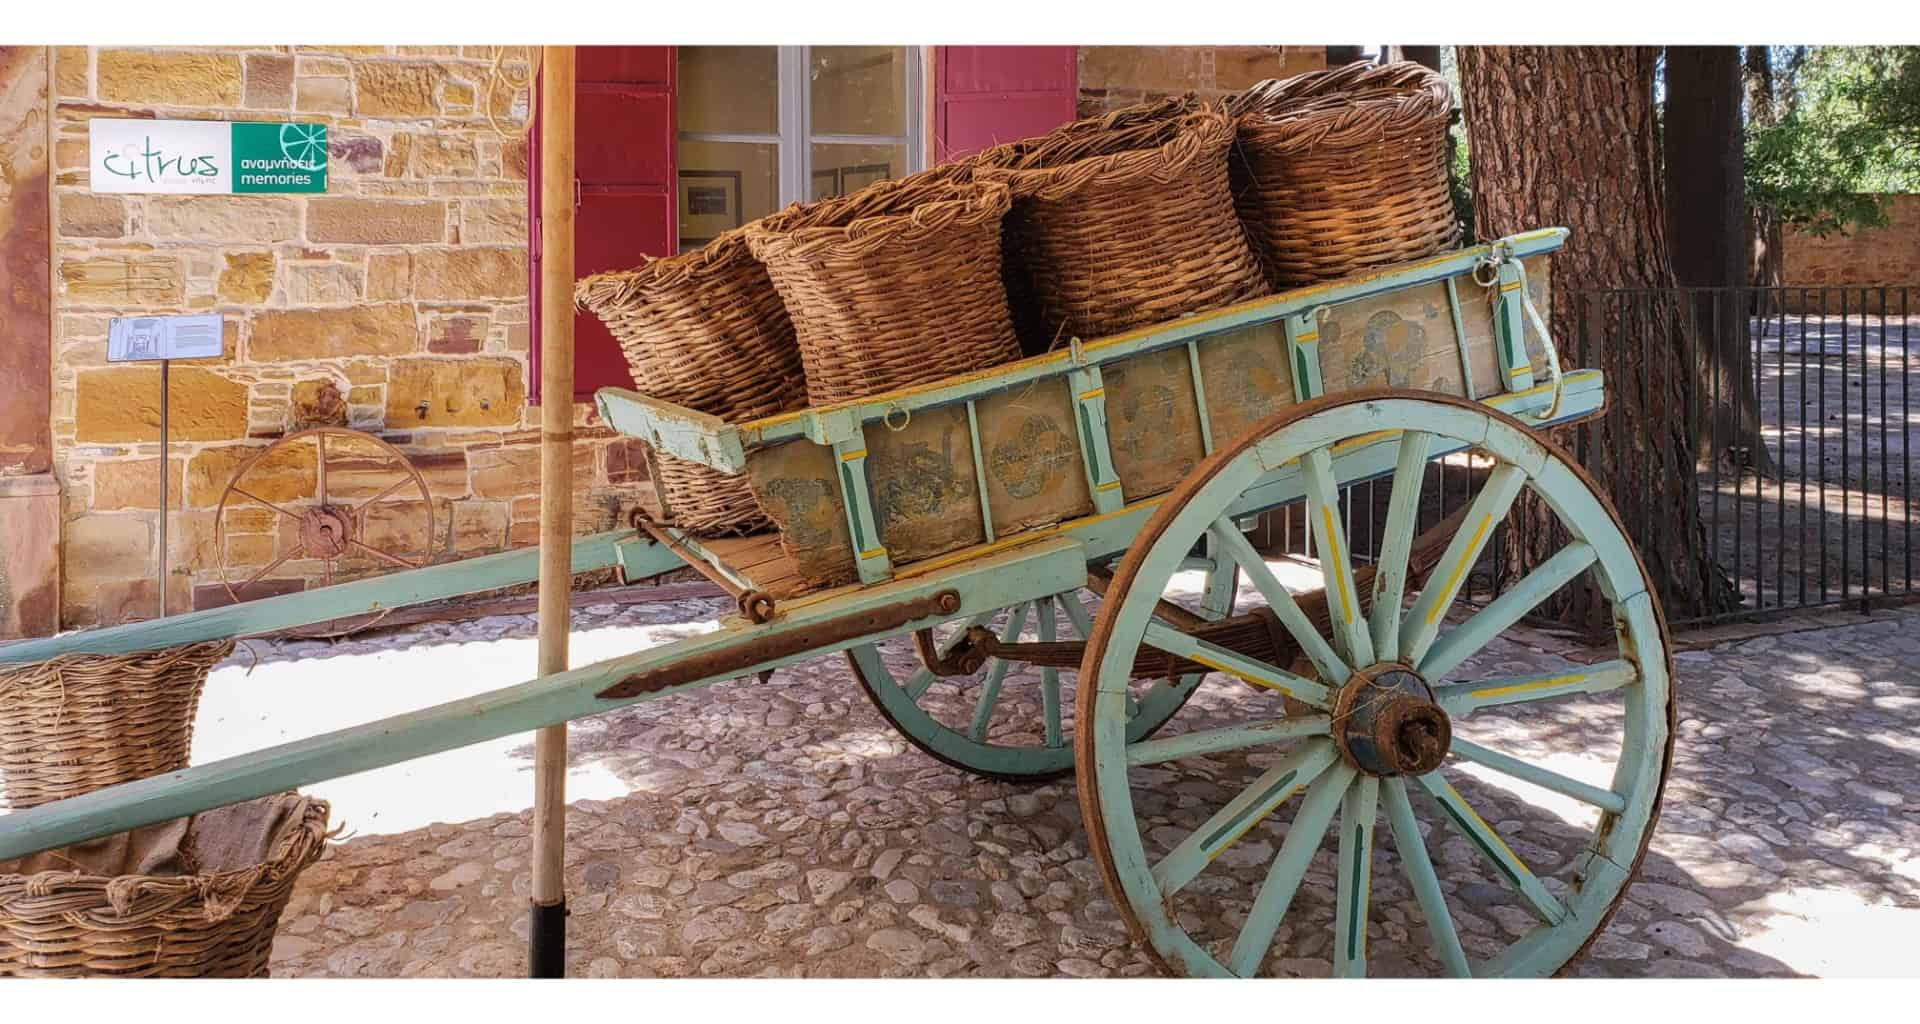 a cart with woven baskets in Chios island Citrus Museum Greece